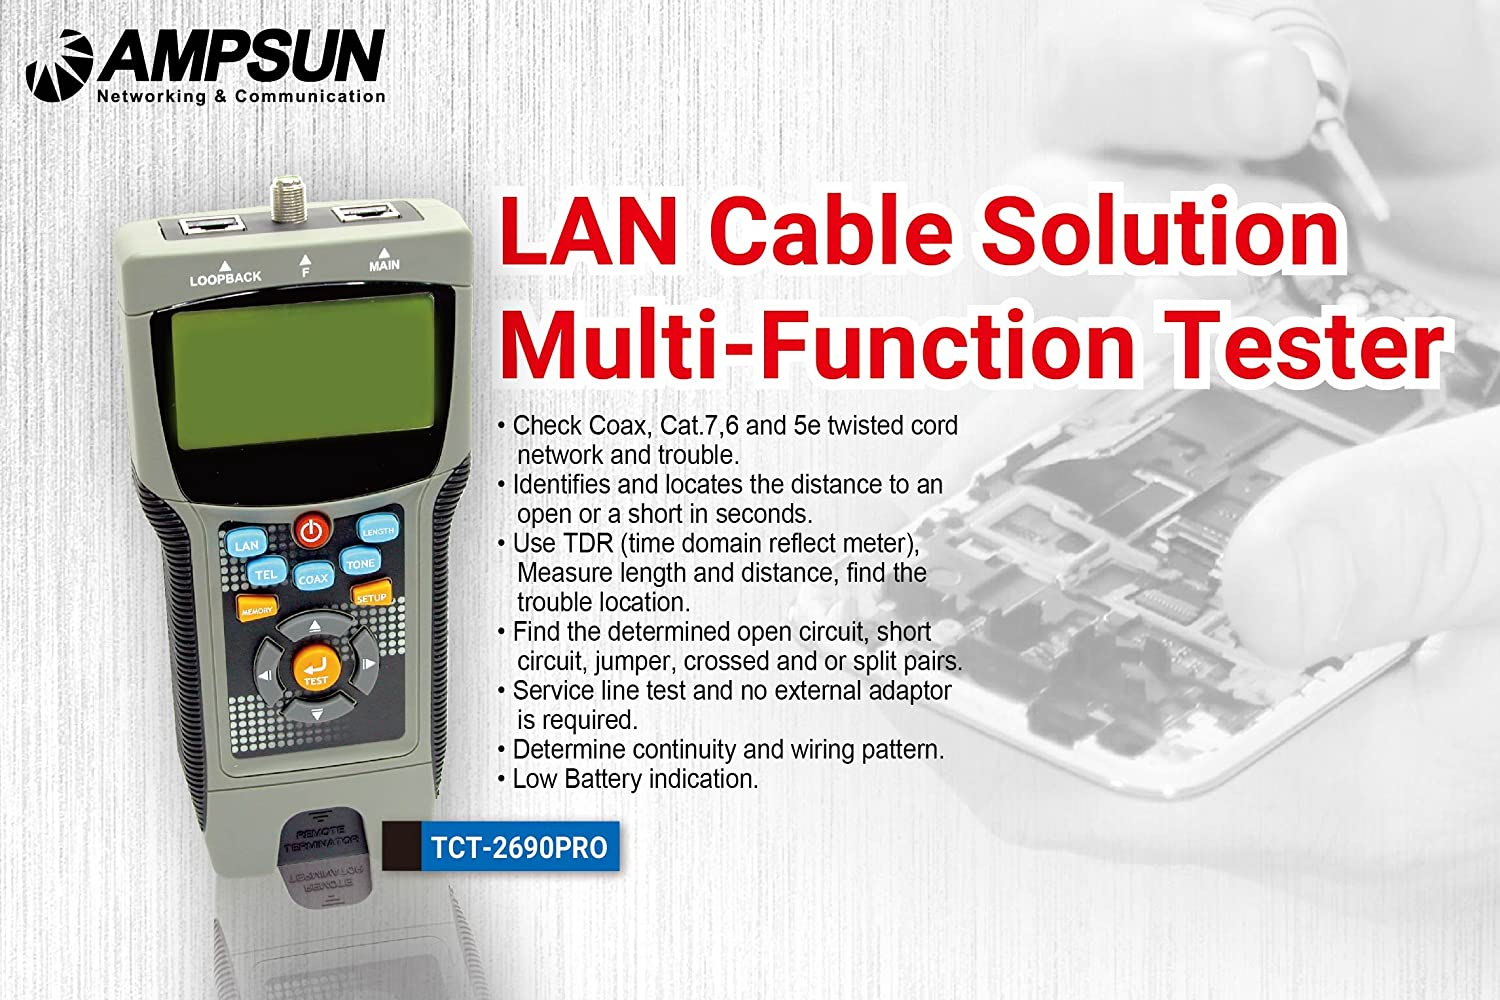 Ampsun Tct 2690pro Lan Cable Solution Multi Function Tester Amazon How To Find Short Circuit Business Industry Science